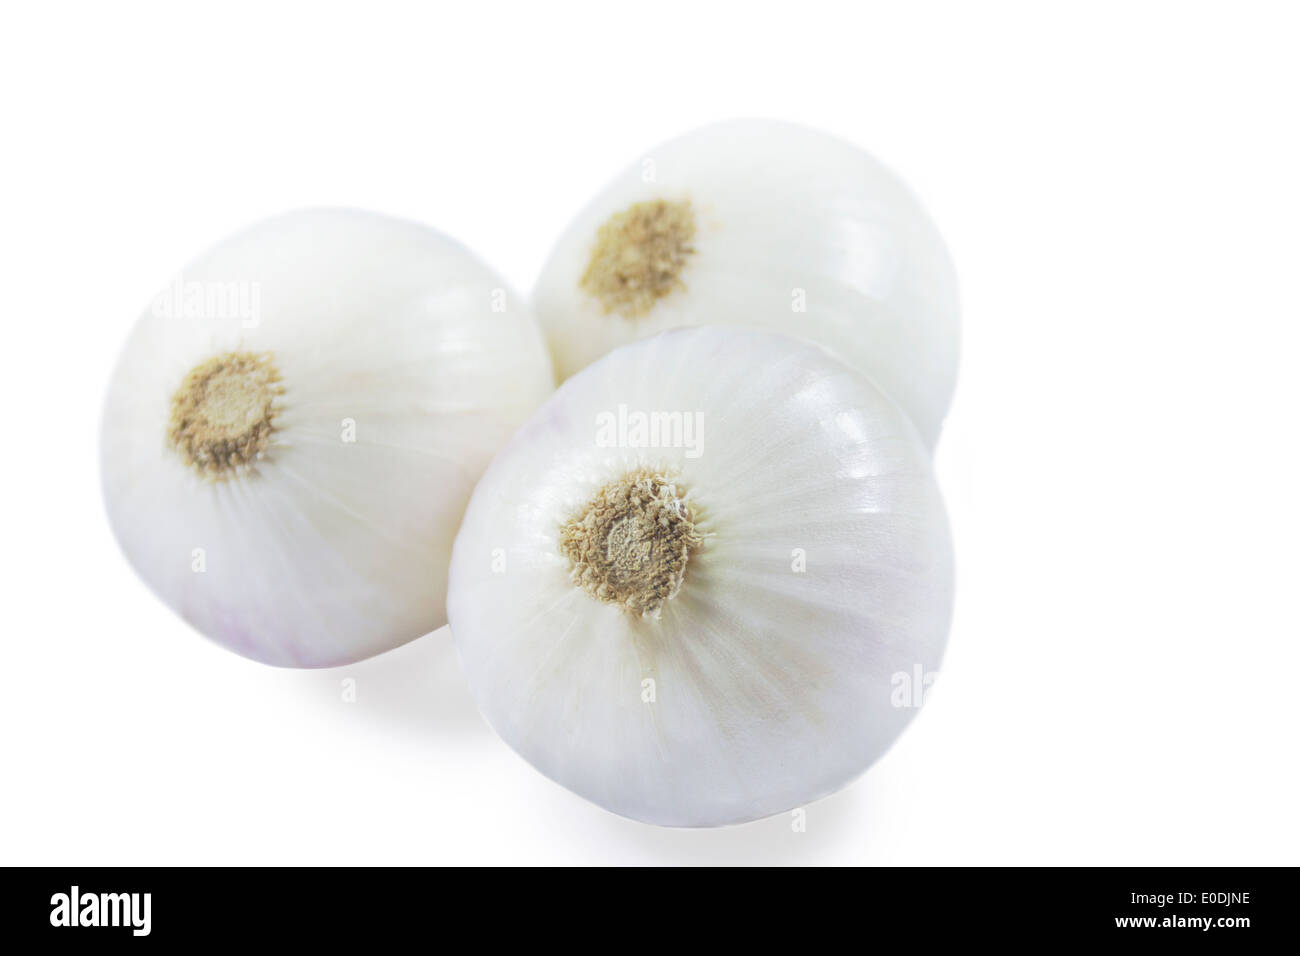 Trois oignons blancs, close-up Photo Stock